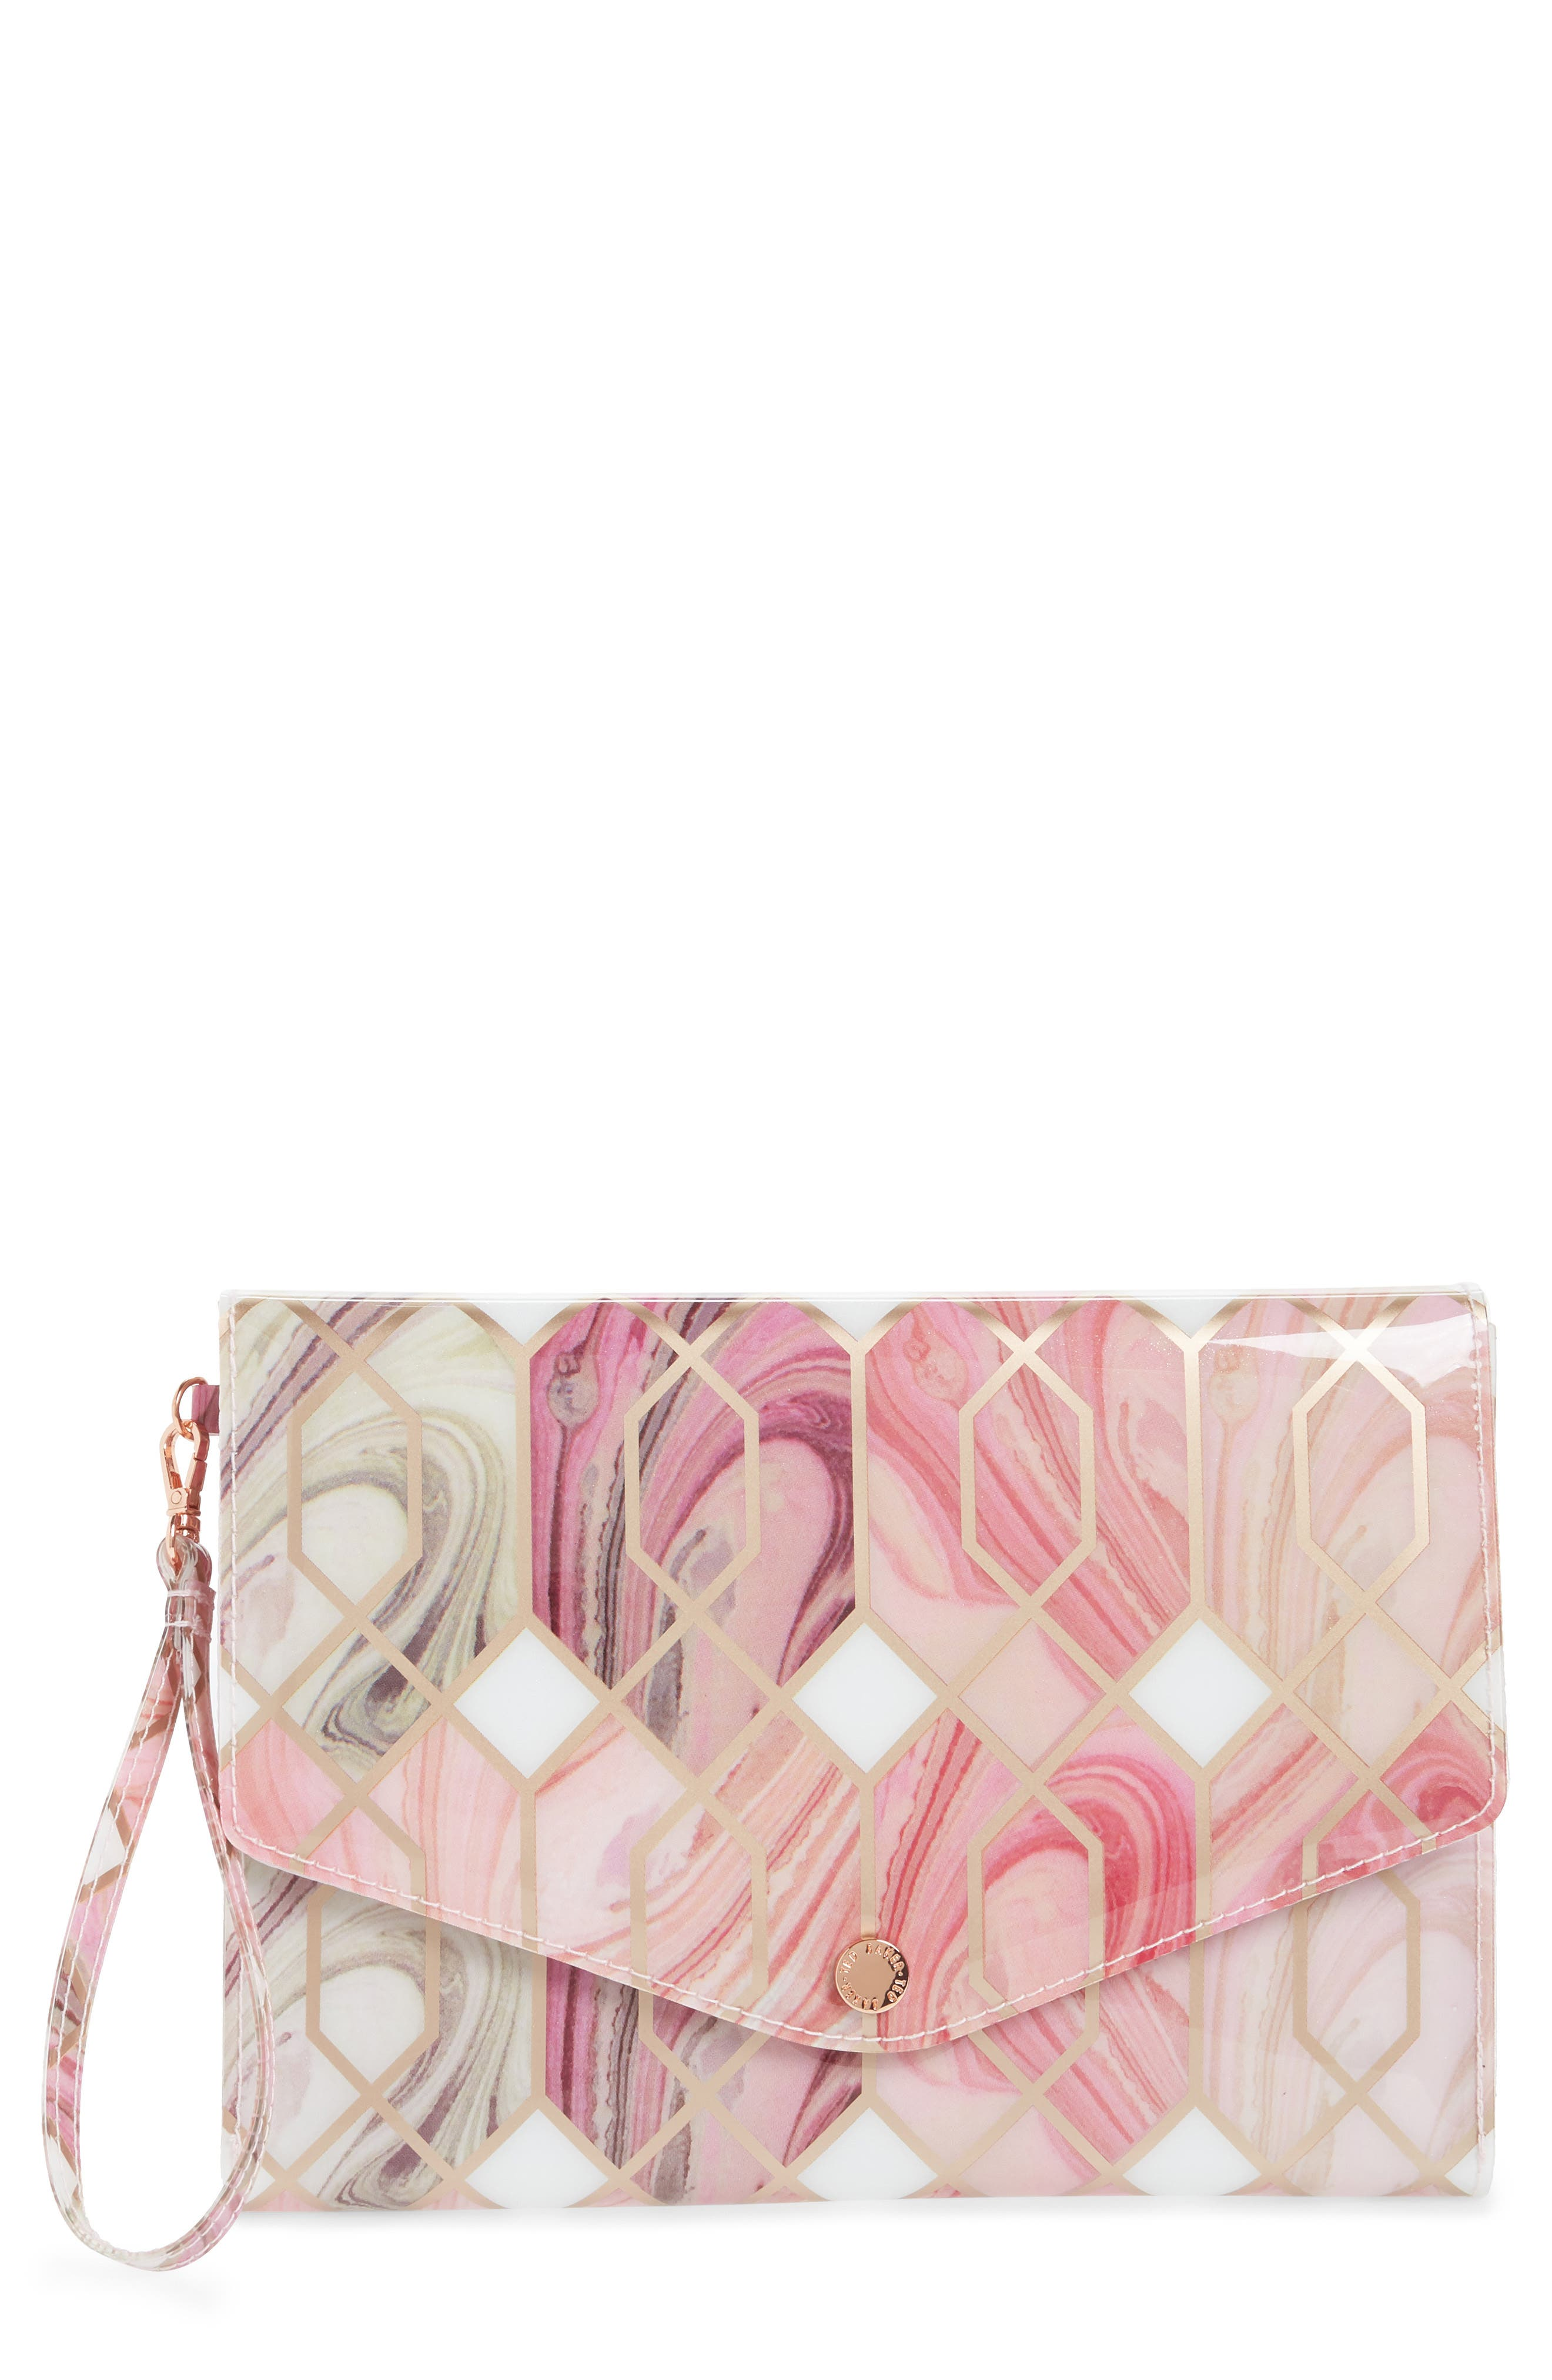 Ted Baker London Sea of Clouds Envelope Clutch